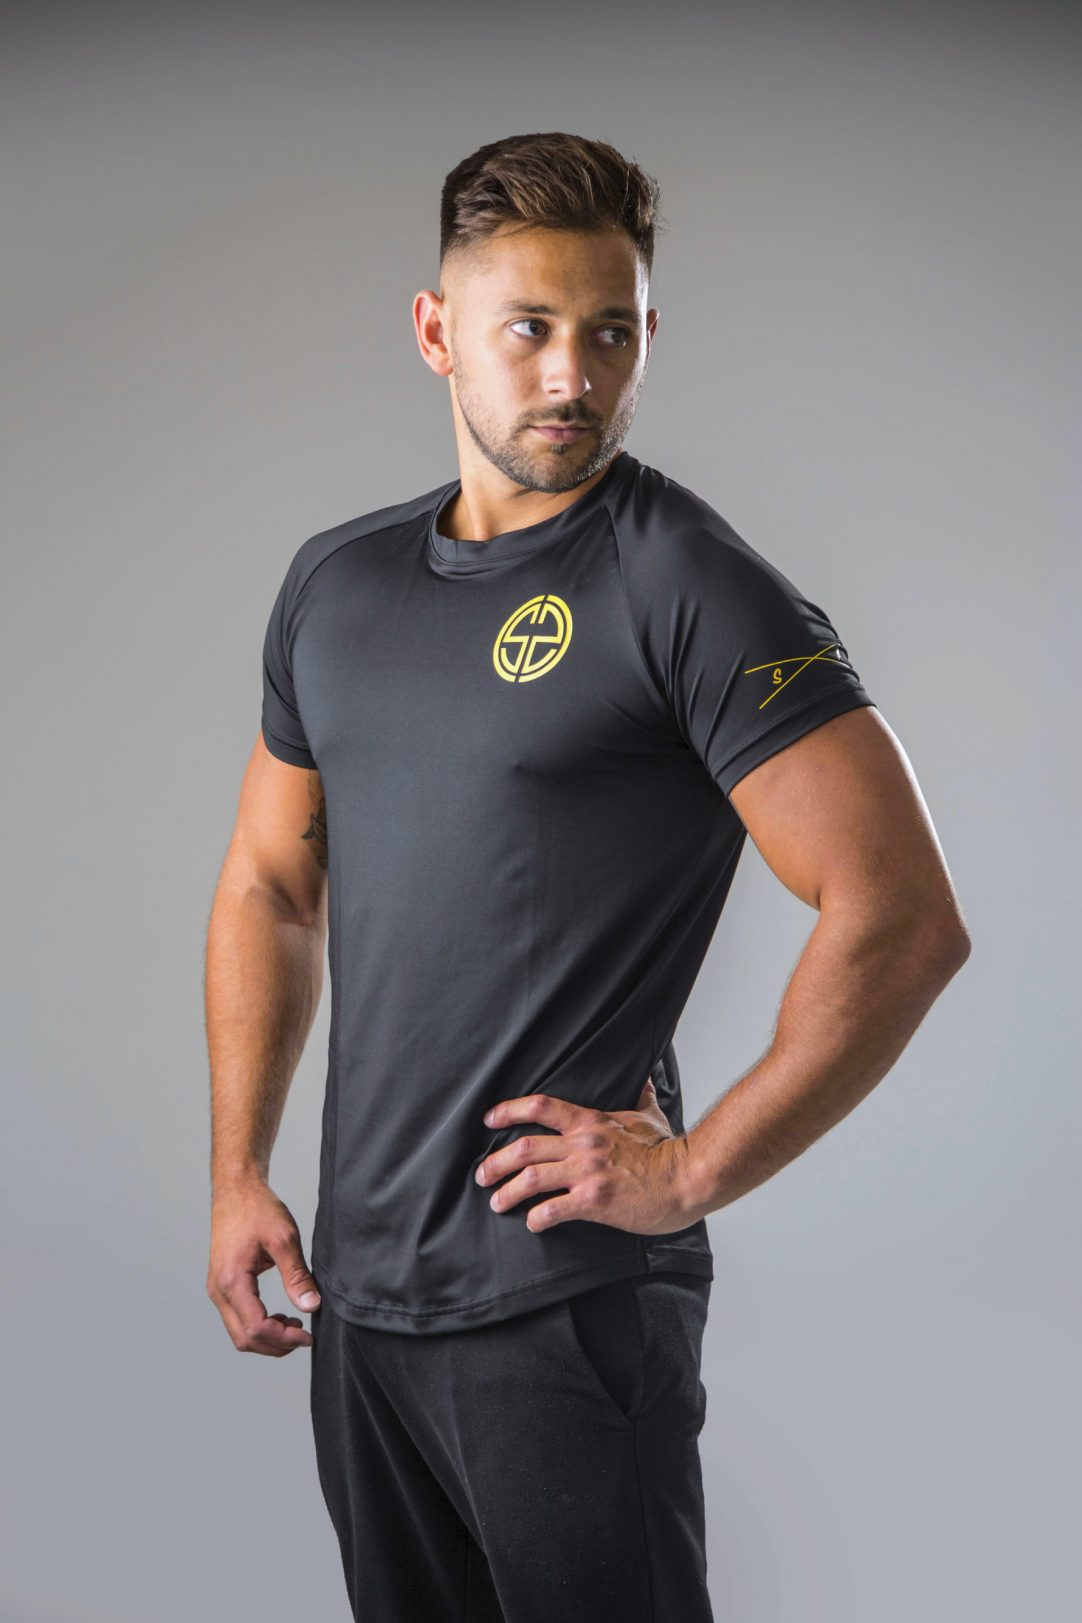 mens dry fit t-shirt in black and yellow | symmetry athletics